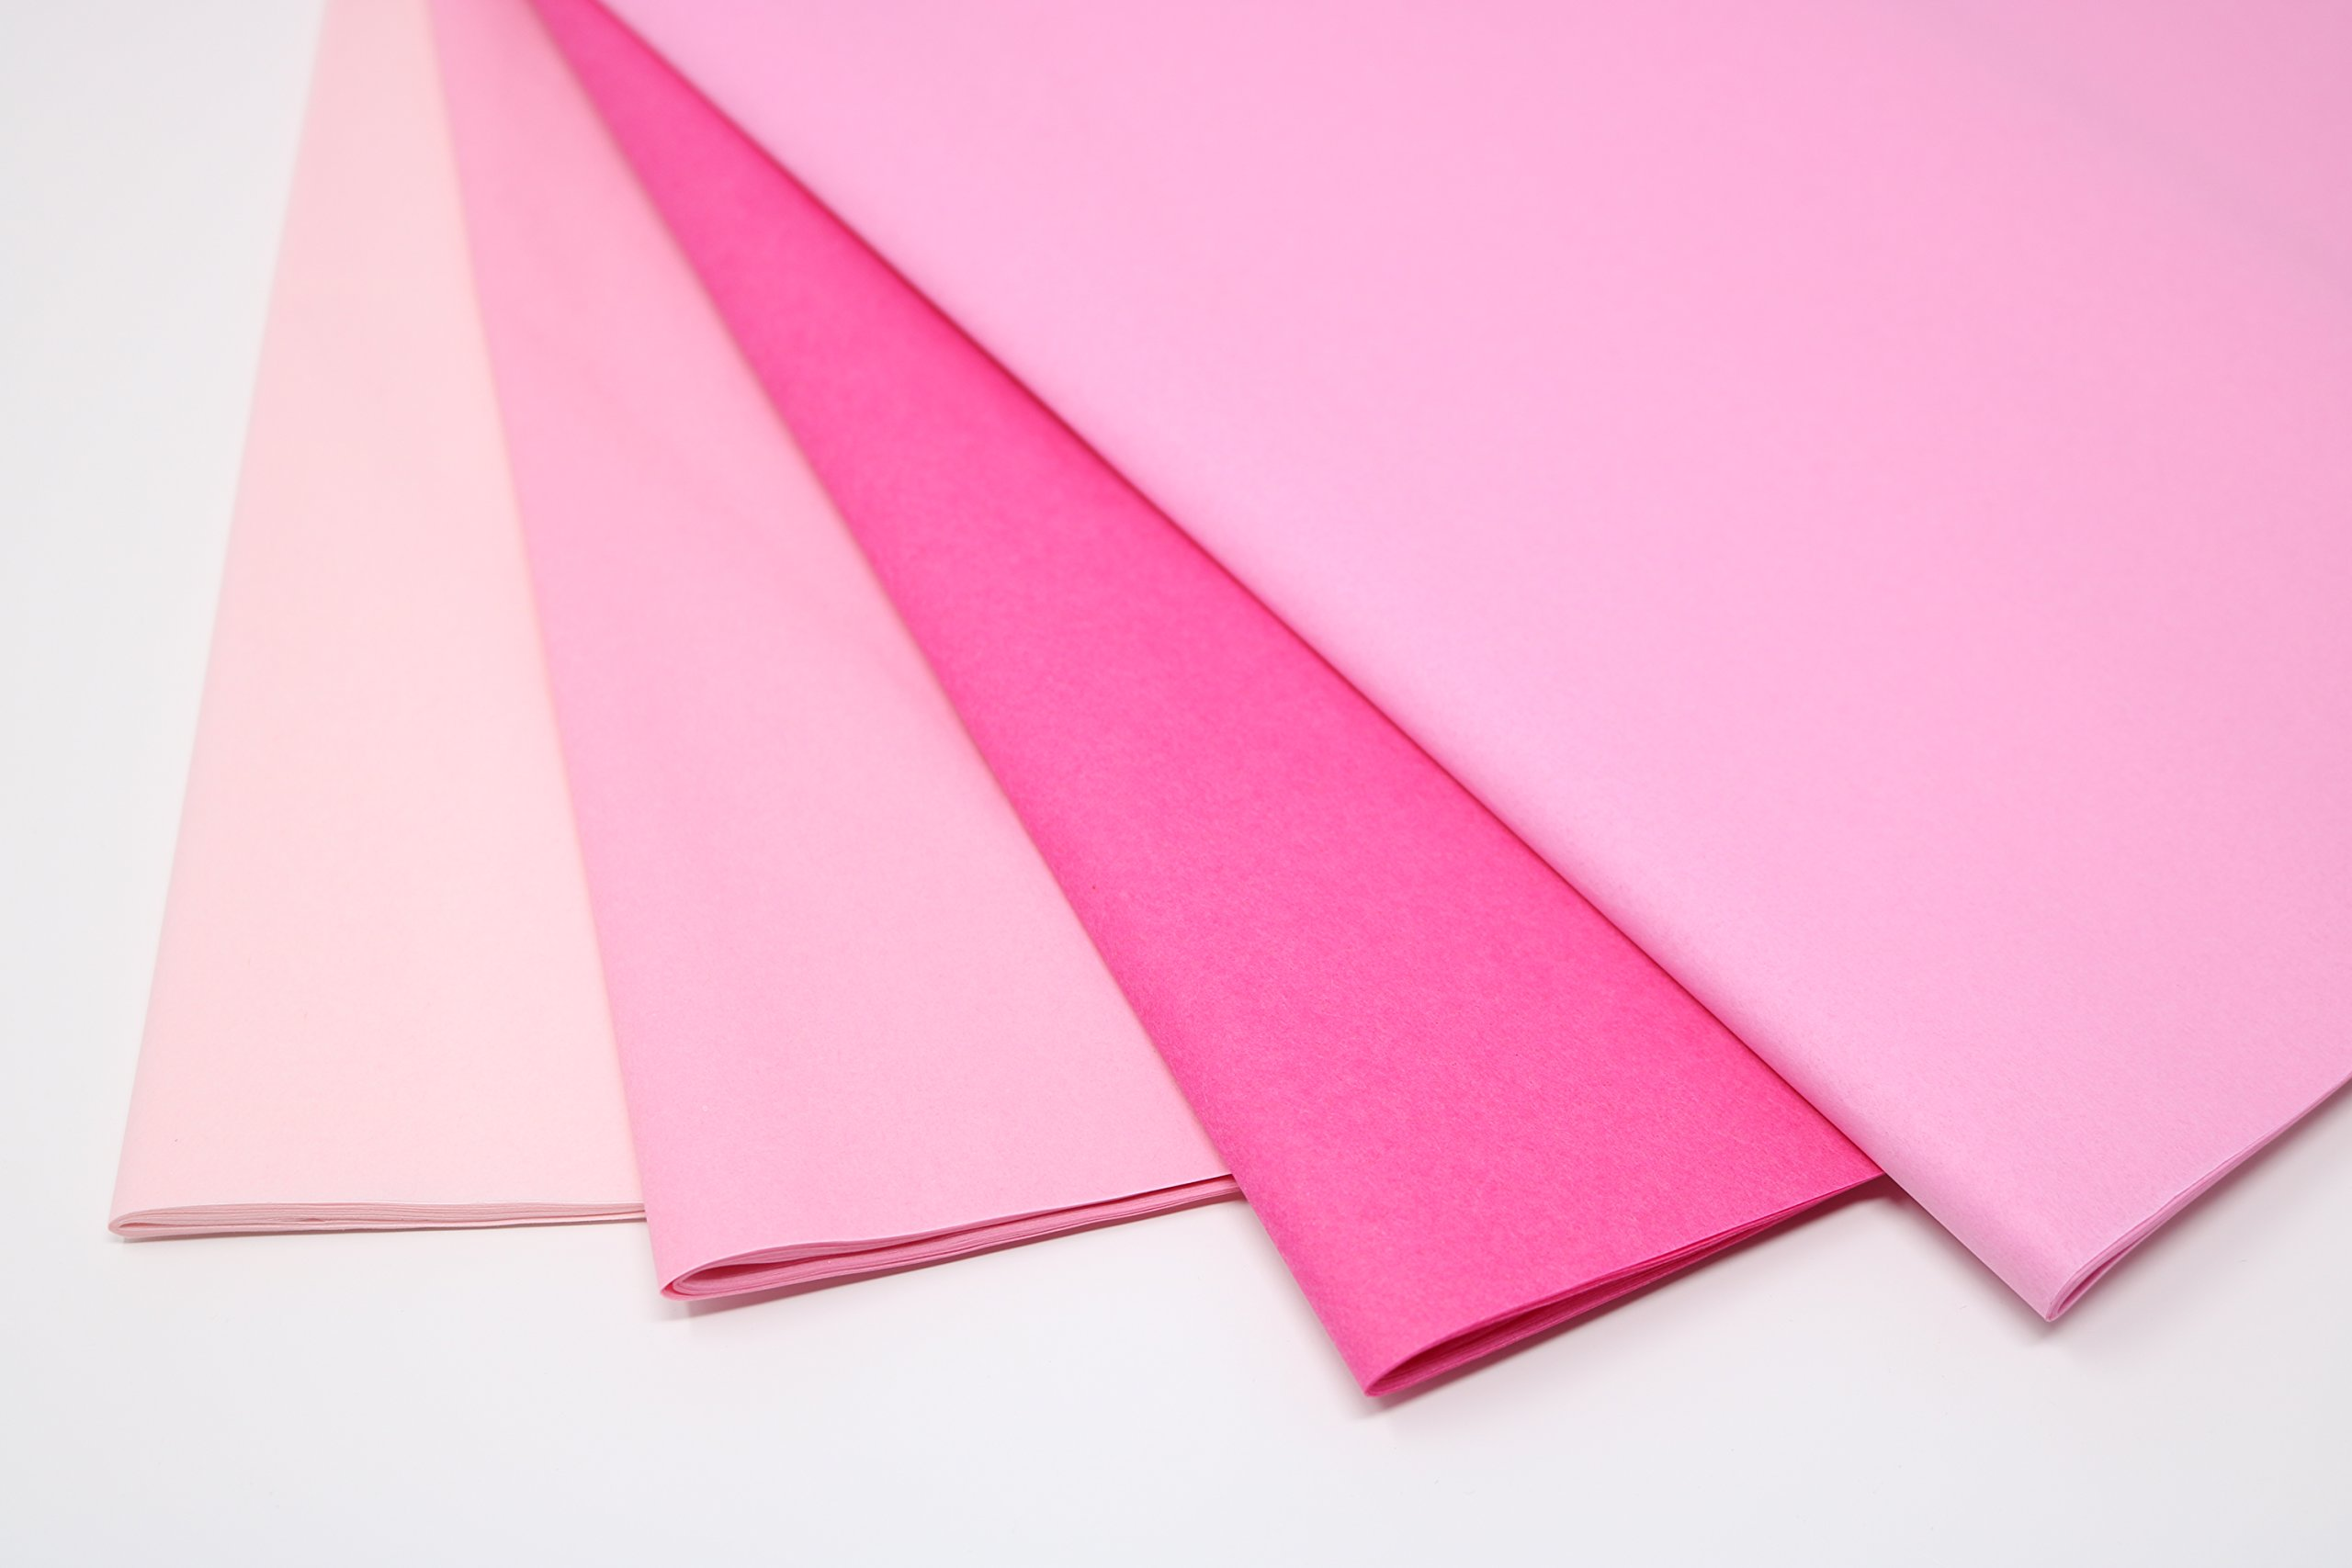 Pink Mix 1 - Gift Wrapping Tissue Paper 96 Sheets 15'' x 20'' | Colors of Rainbow